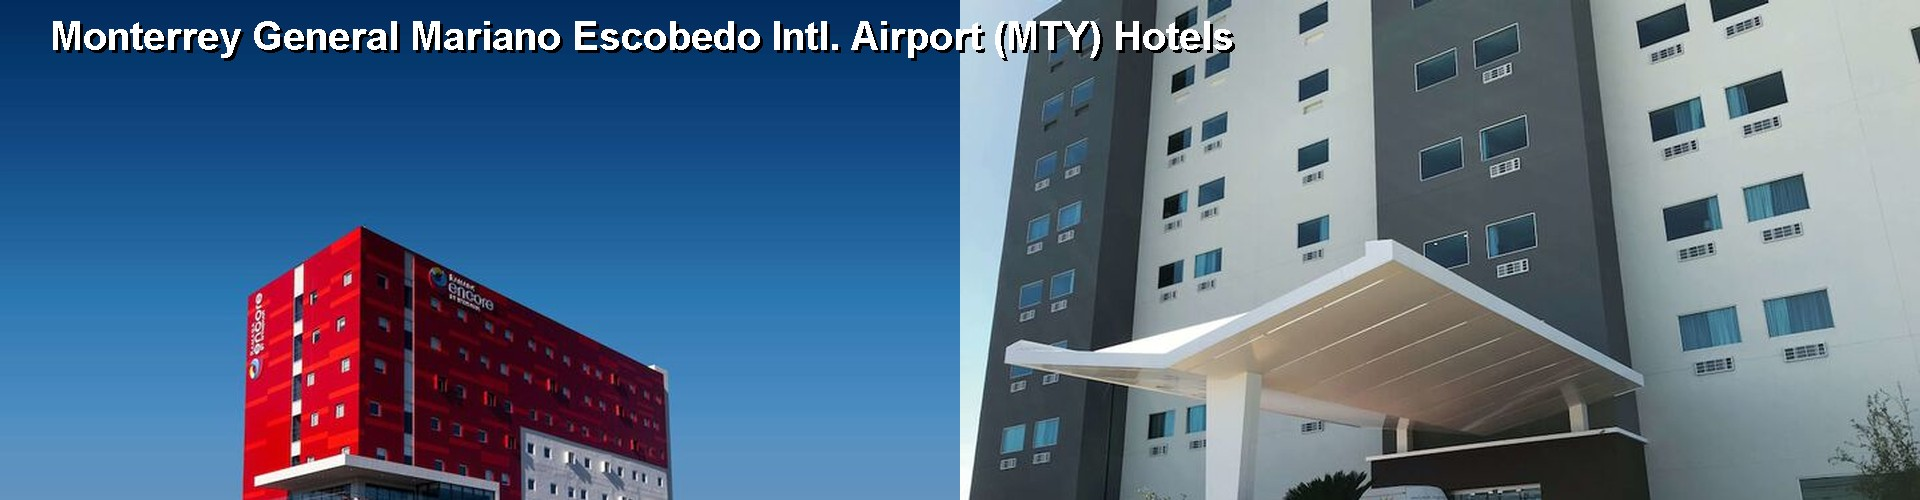 5 Best Hotels near Monterrey General Mariano Escobedo Intl. Airport (MTY)